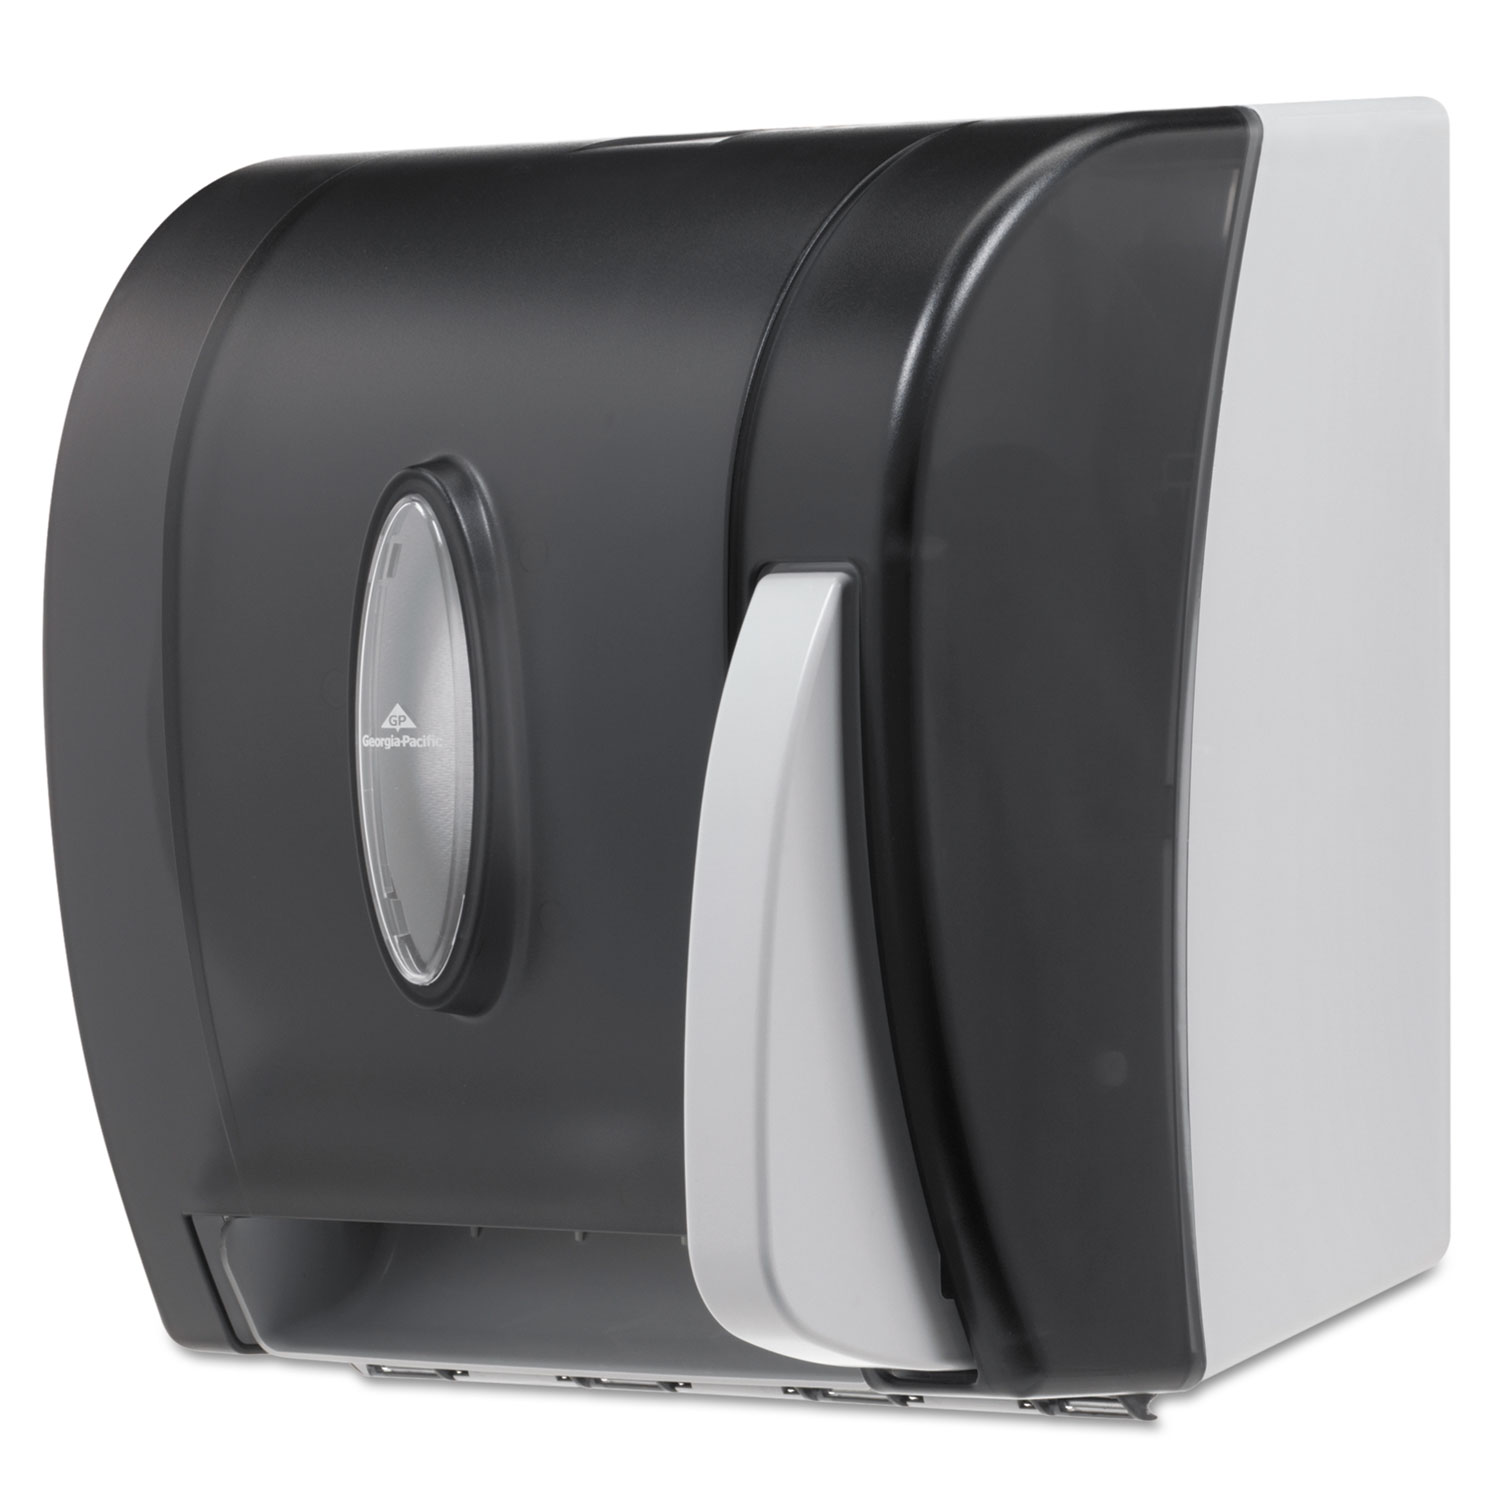 Hygienic PushPaddle Roll Towel Dispenser by Georgia Pacific